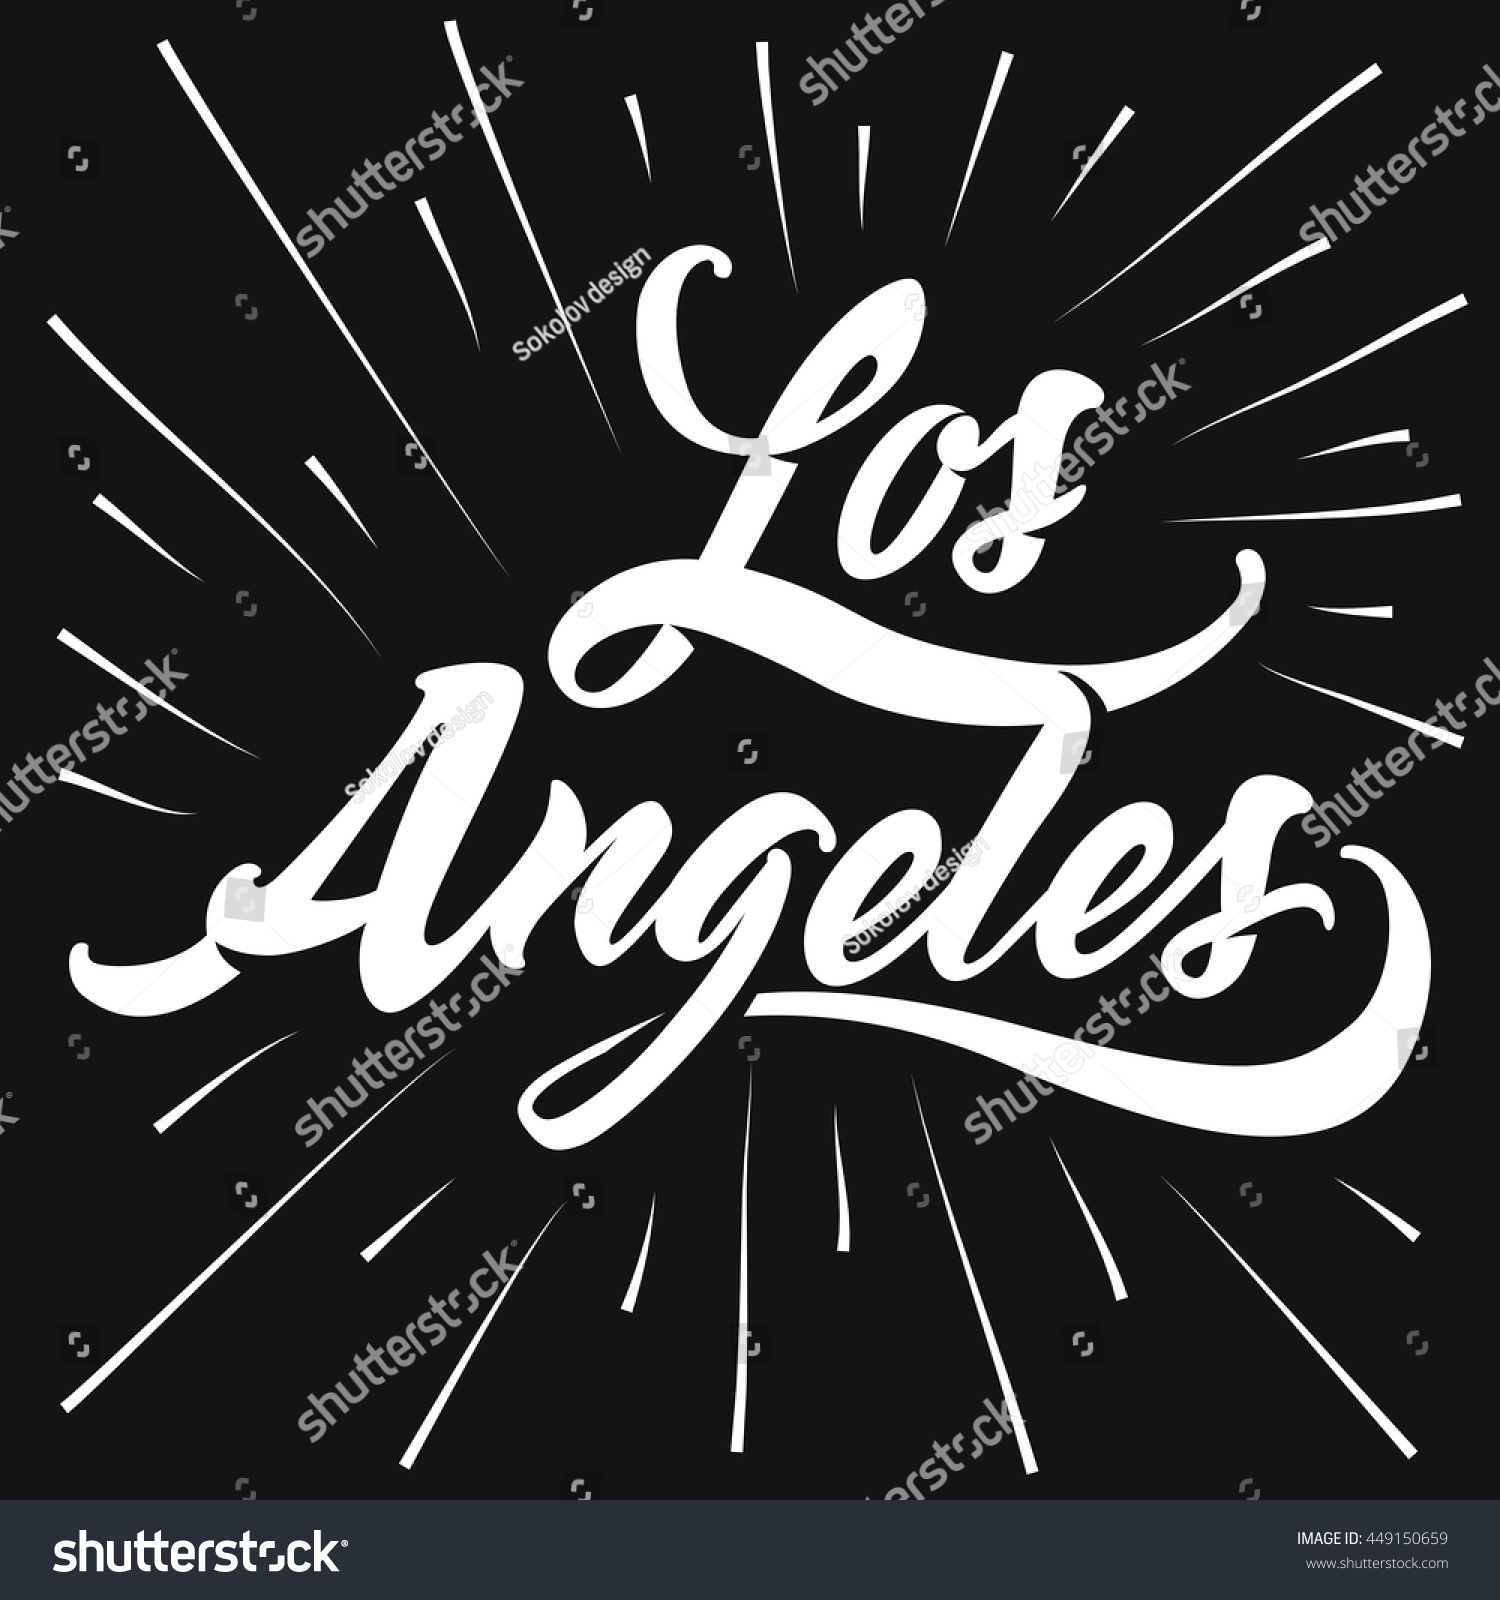 Design t shirts los angeles - Design T Shirts Los Angeles Retro Old School Tee Graphics Vintage Hand Lettered Textured Los Download